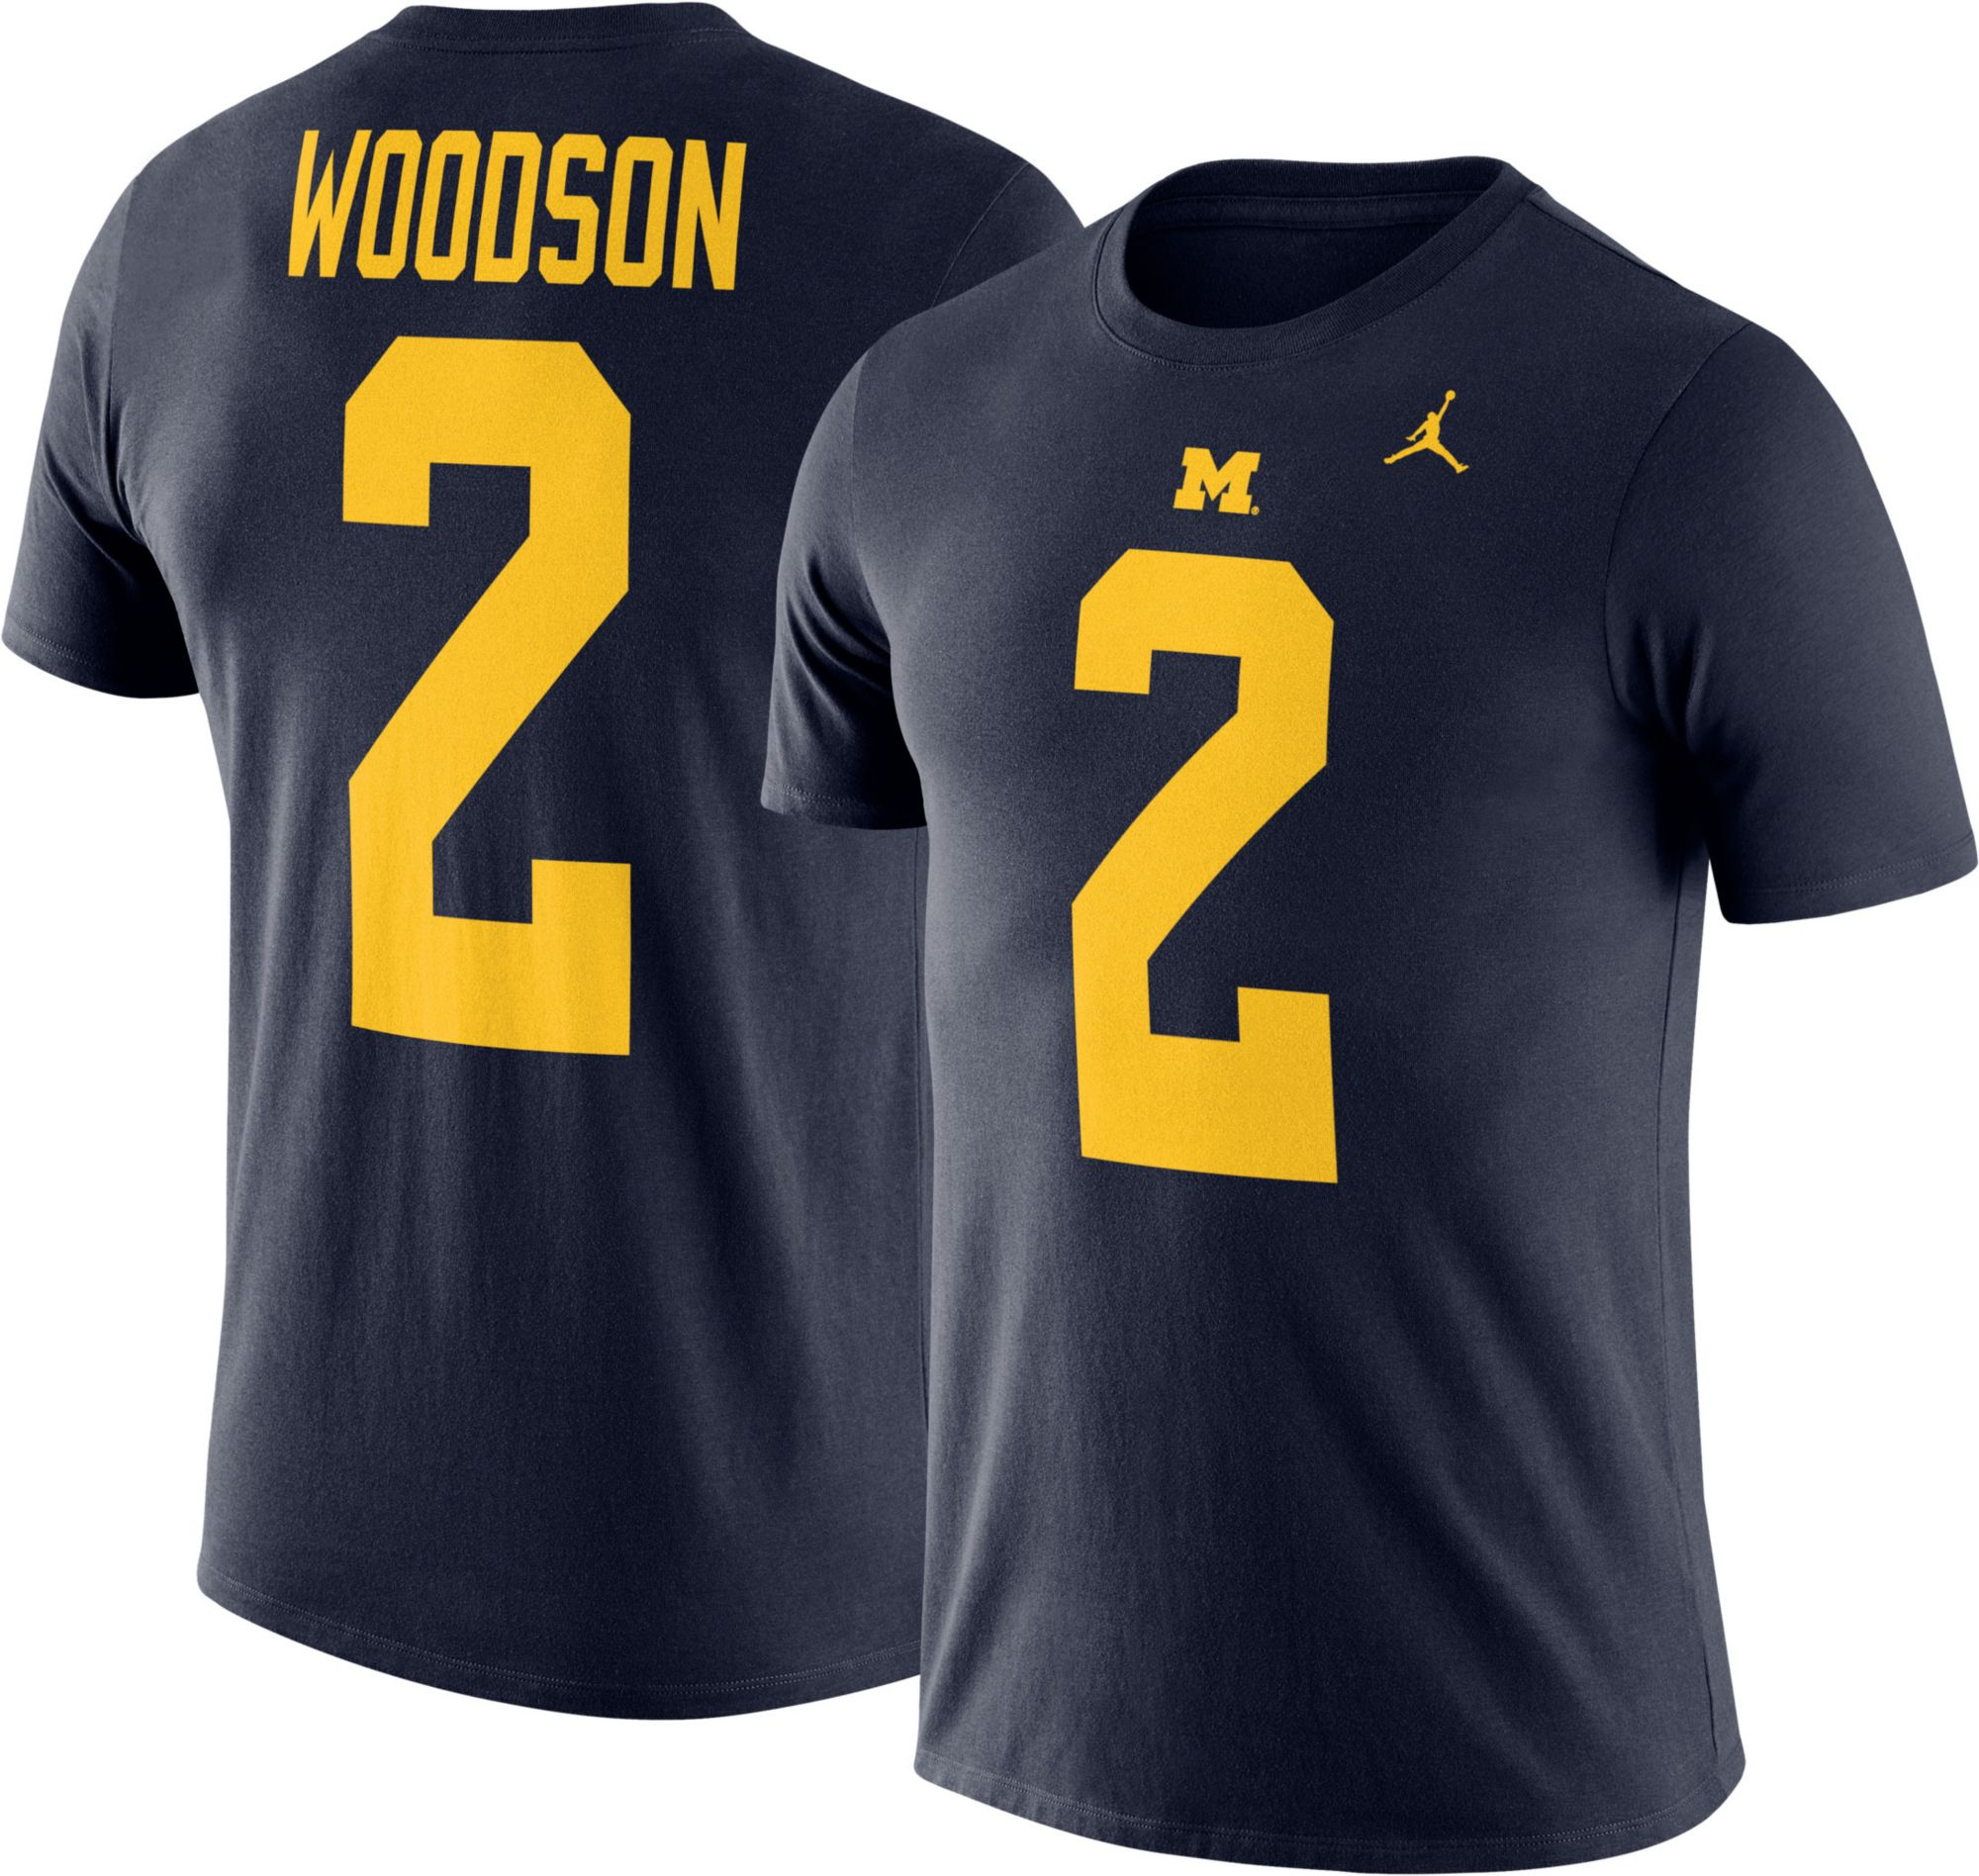 charles woodson jersey